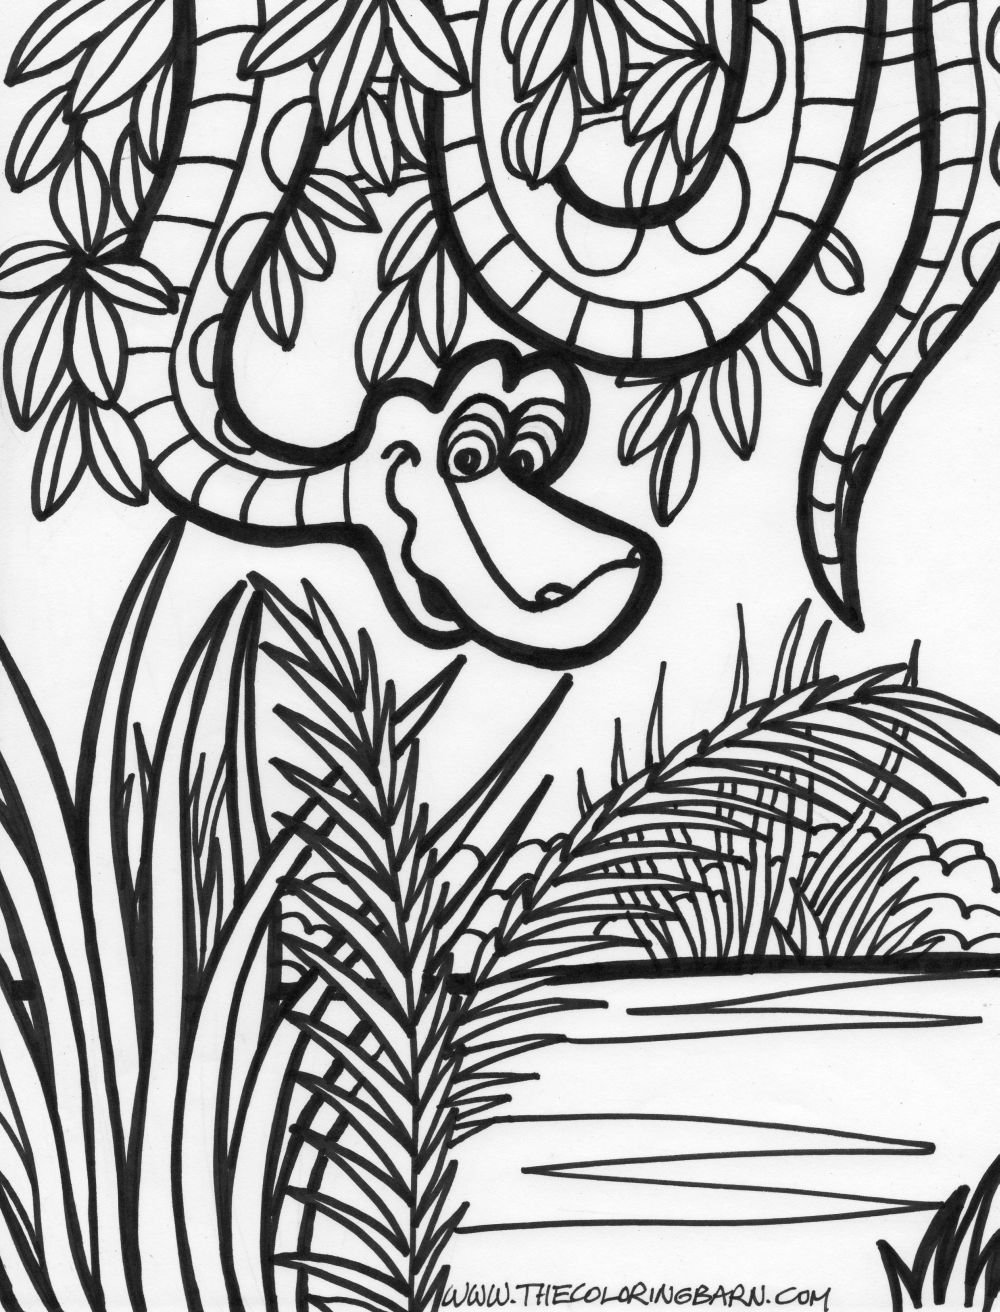 Drawn rainforest jungle scenery Jungle jungle pages pages coloring